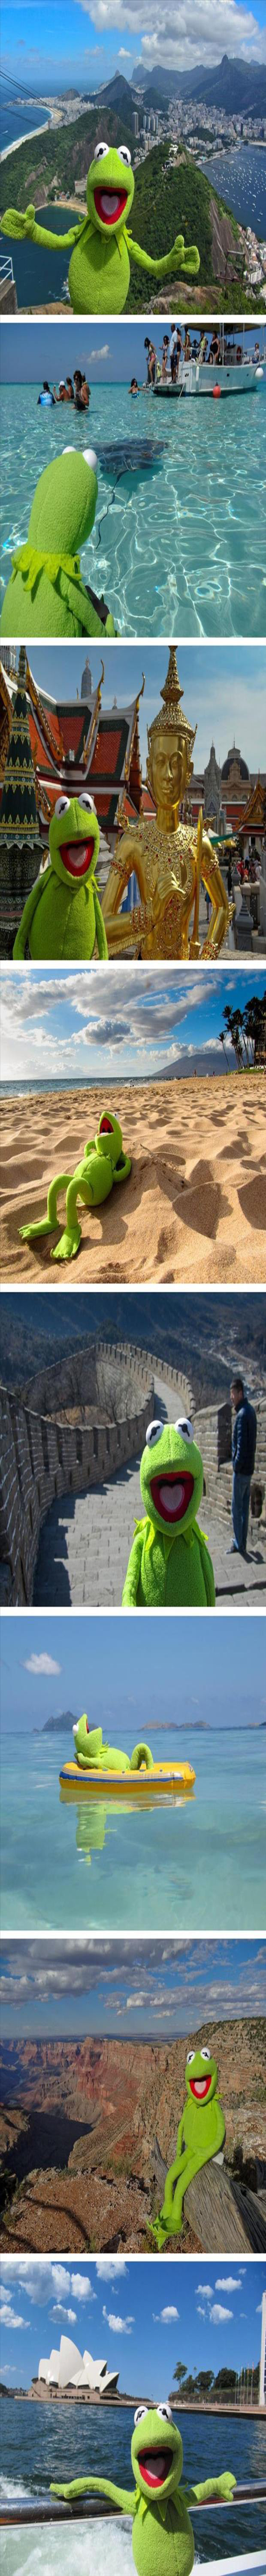 a day in the life of kermit the frog